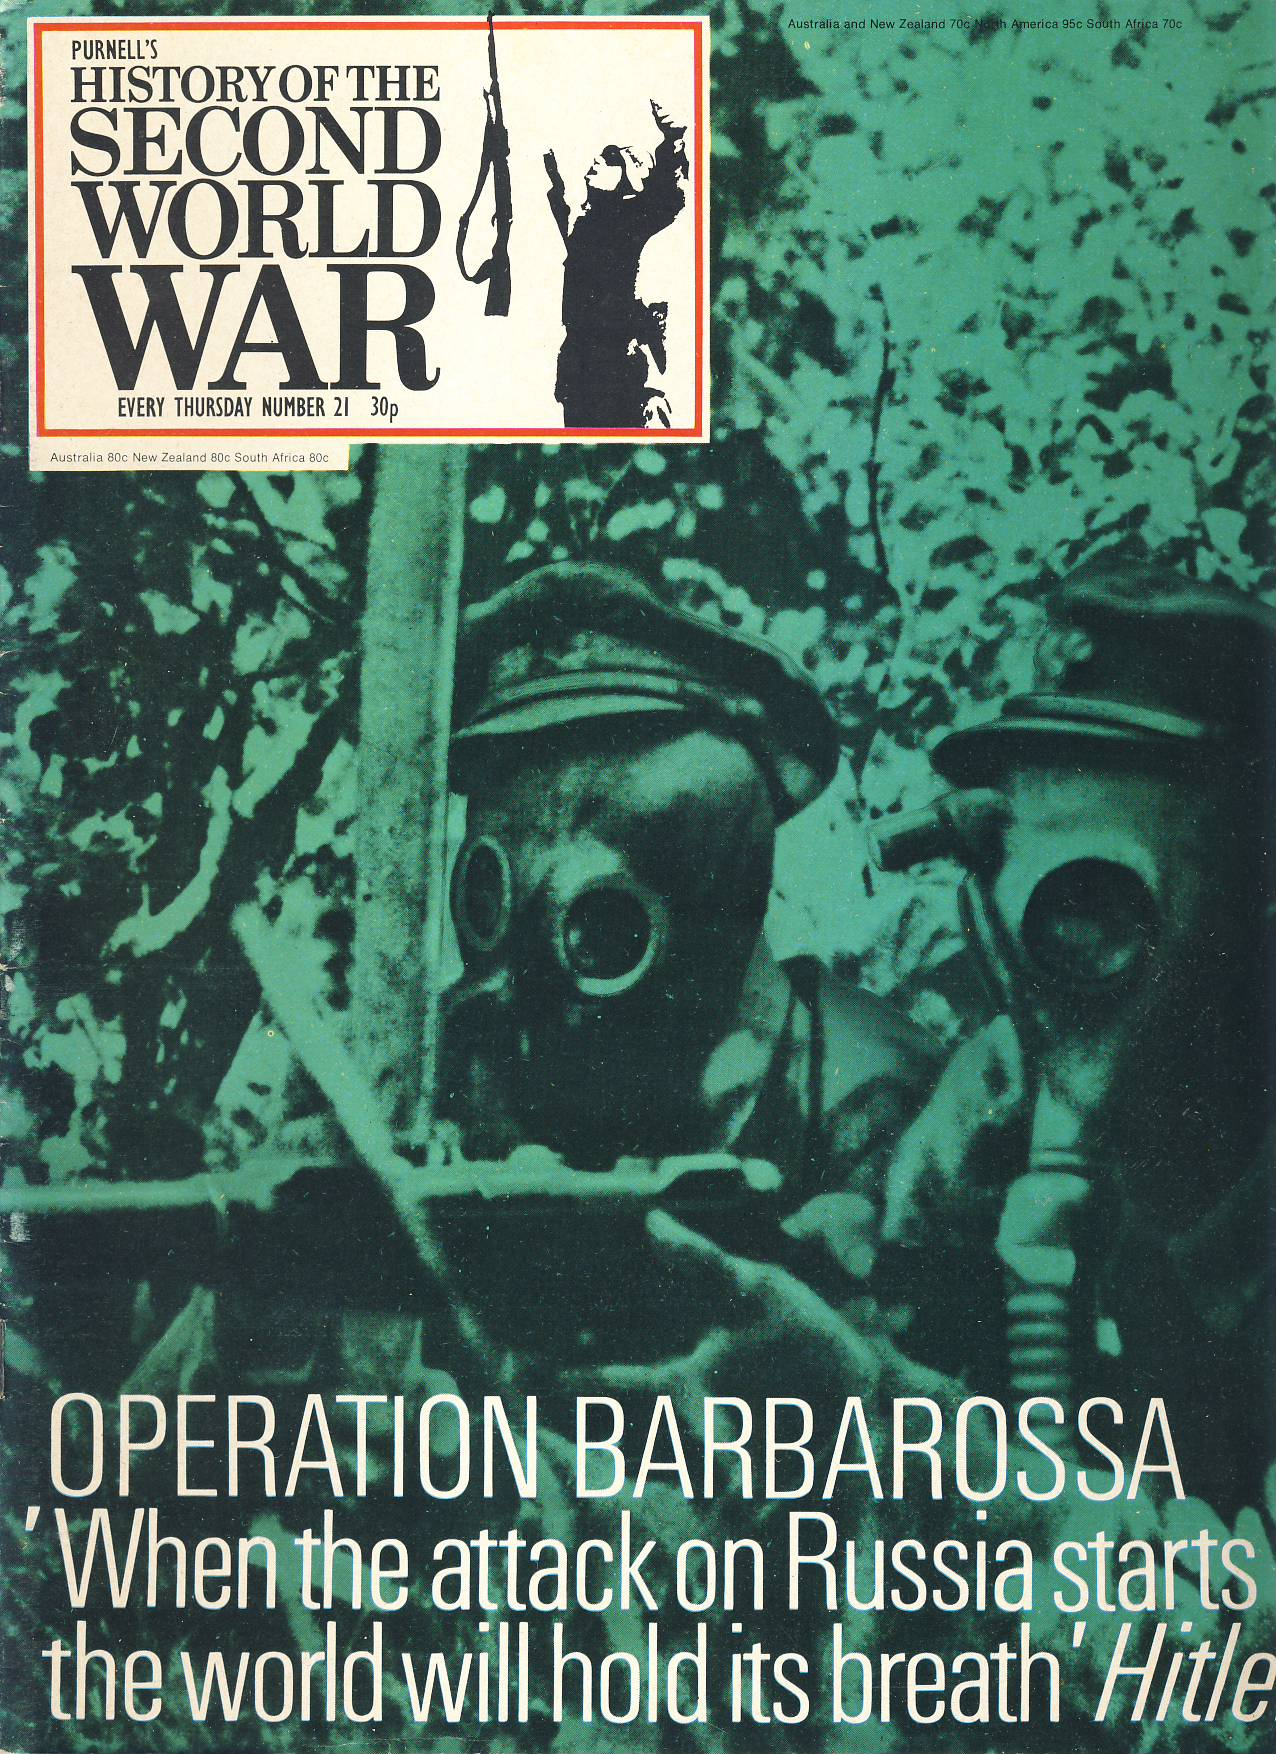 History of the Second World War Magazine #21 OPERATION BARBAROSSA Wehrmacht A vintage Purnell's weekly magazine in good read condition. Please see larger photo and full description for details.